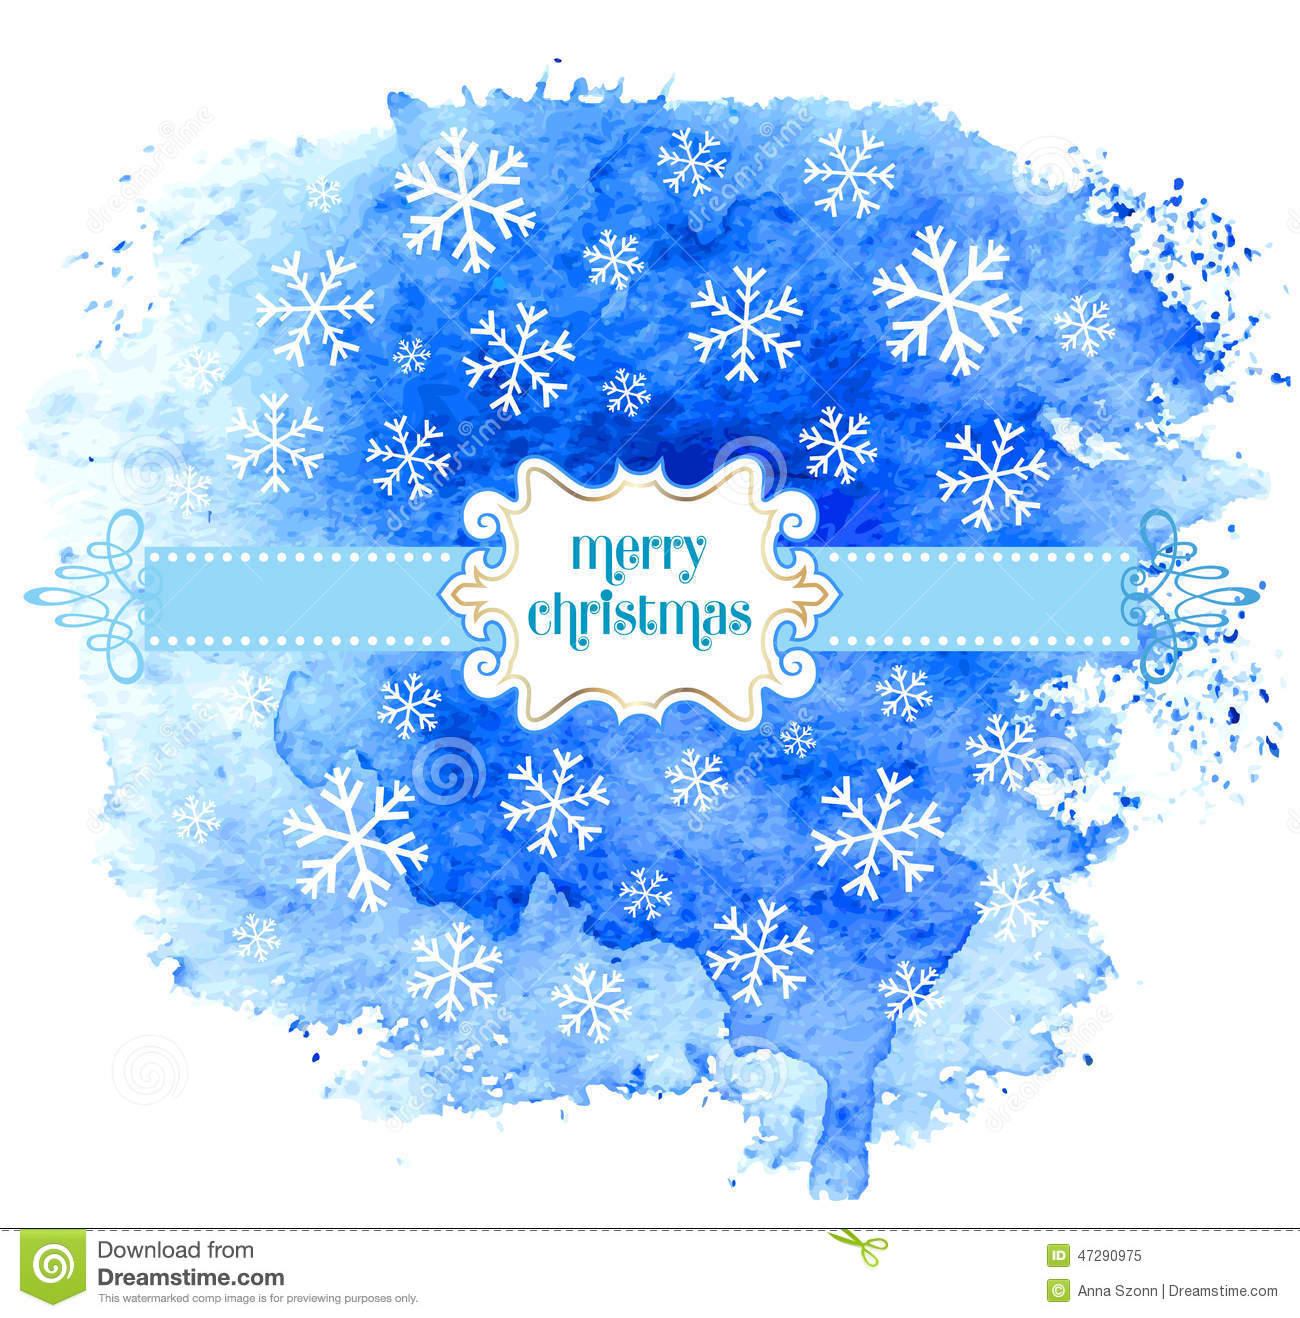 Merry Christmas greeting card with watercolor background. Vector.